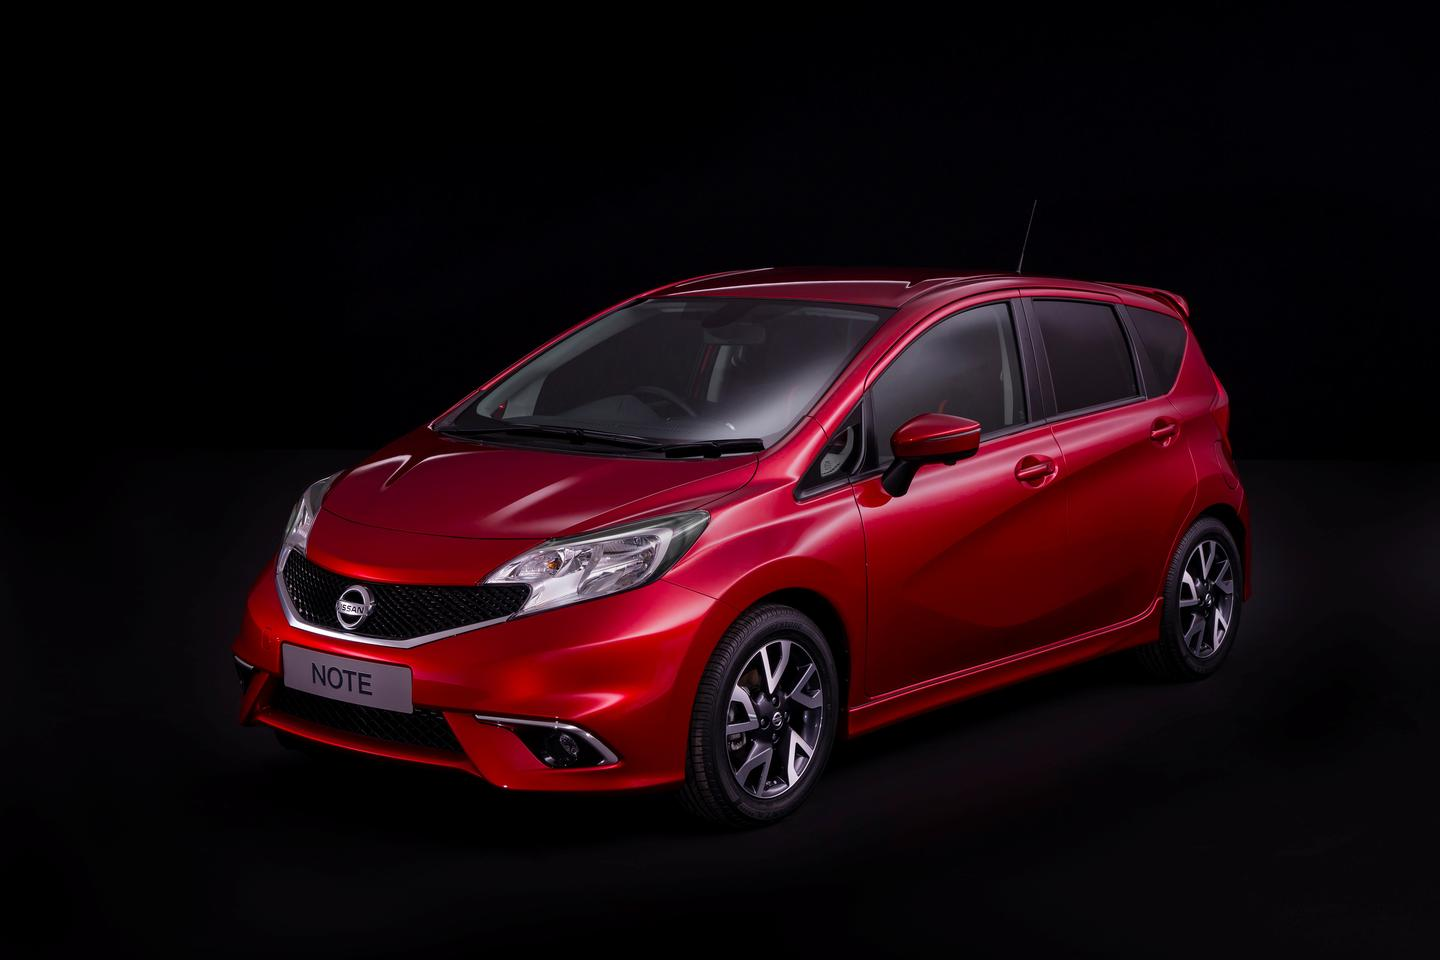 Nissan will unveil its new Note in Geneva next month